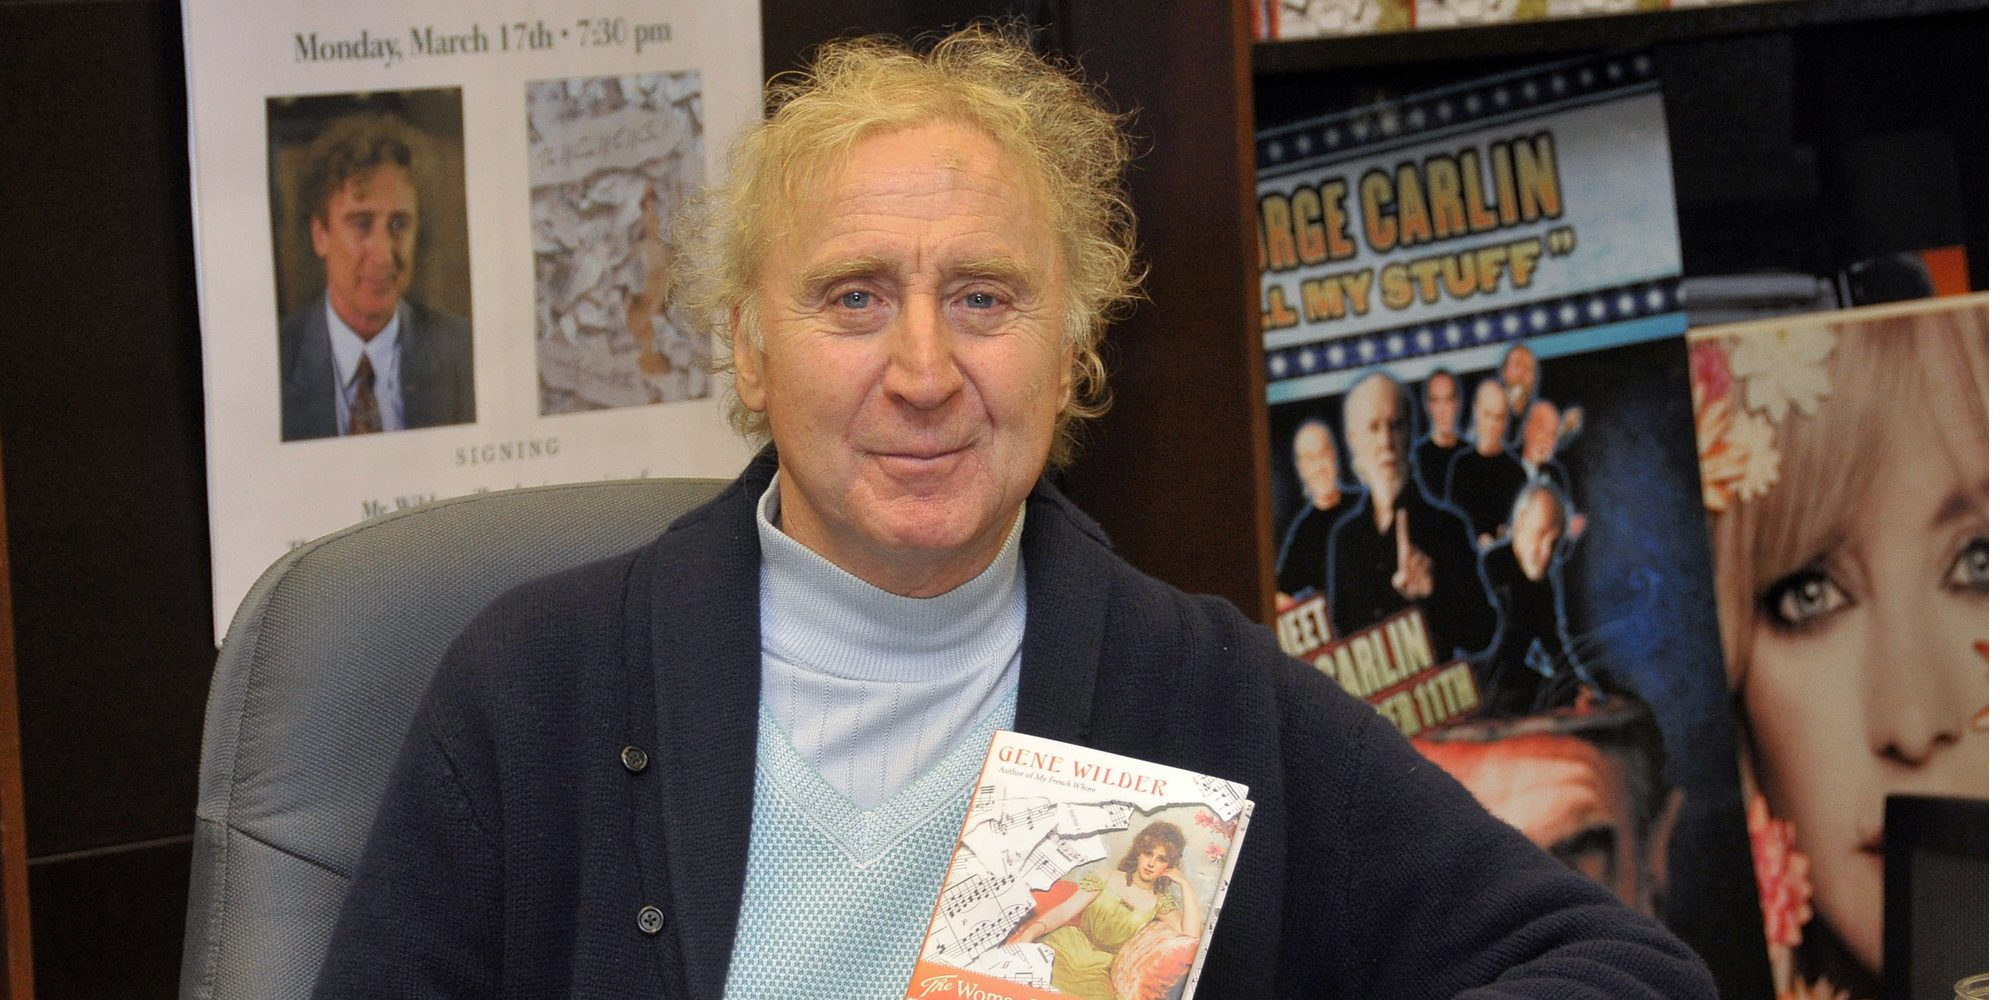 Muere Gene Wilder, actor que interpretó a Willy Wonka, a los 83 años